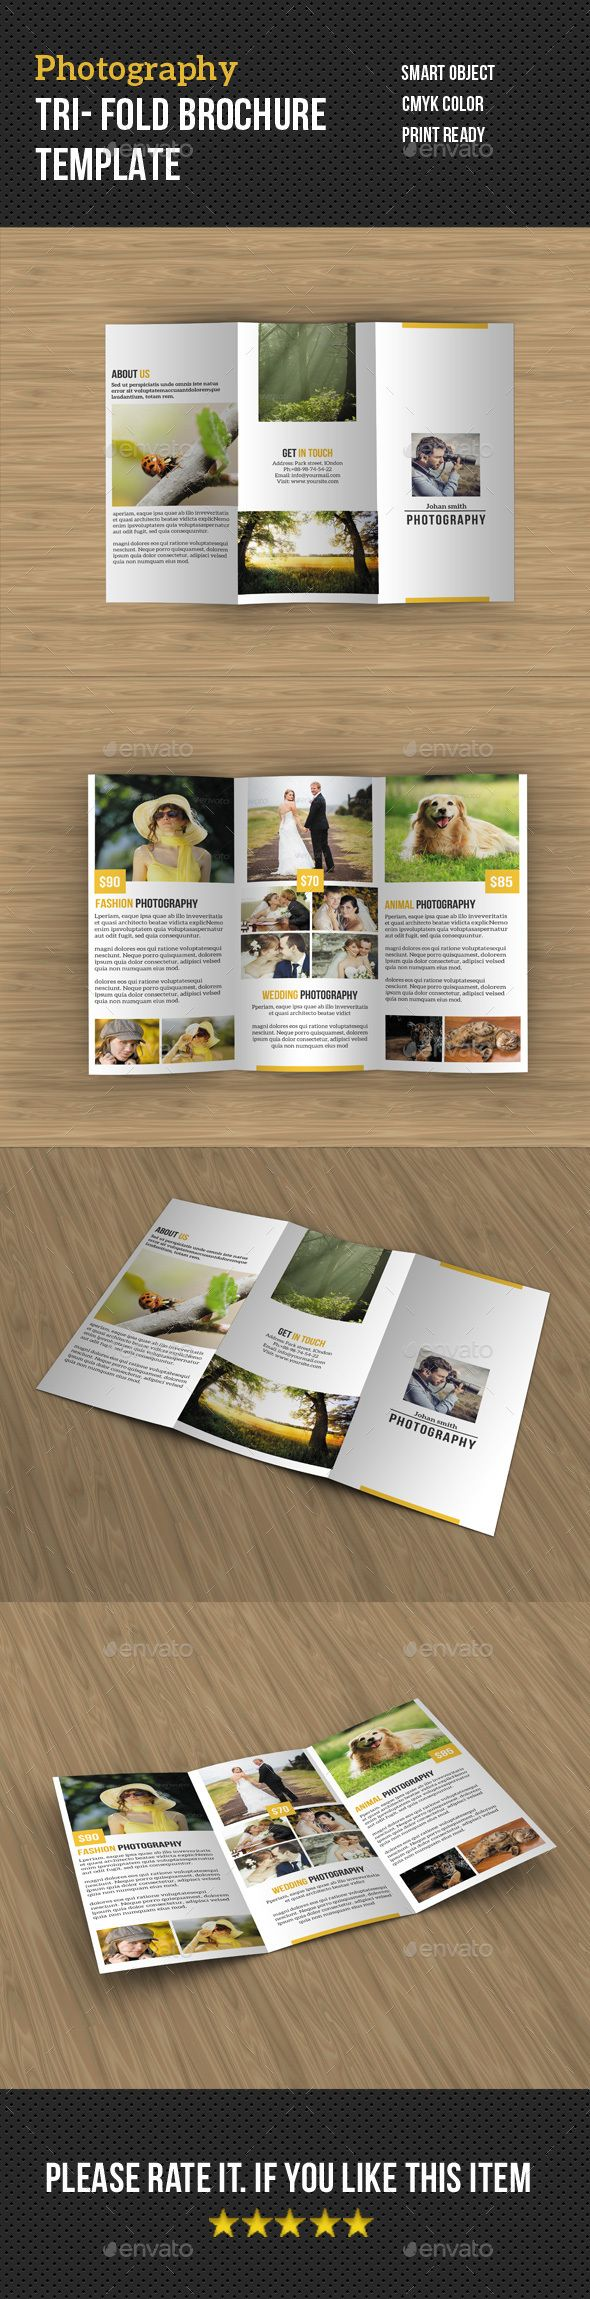 Photography Tri fold Brochure Template PSD #design Download: http://graphicriver.net/item/photography-tri-fold-brochure/13960704?ref=ksioks                                                                                                                                                                                 More